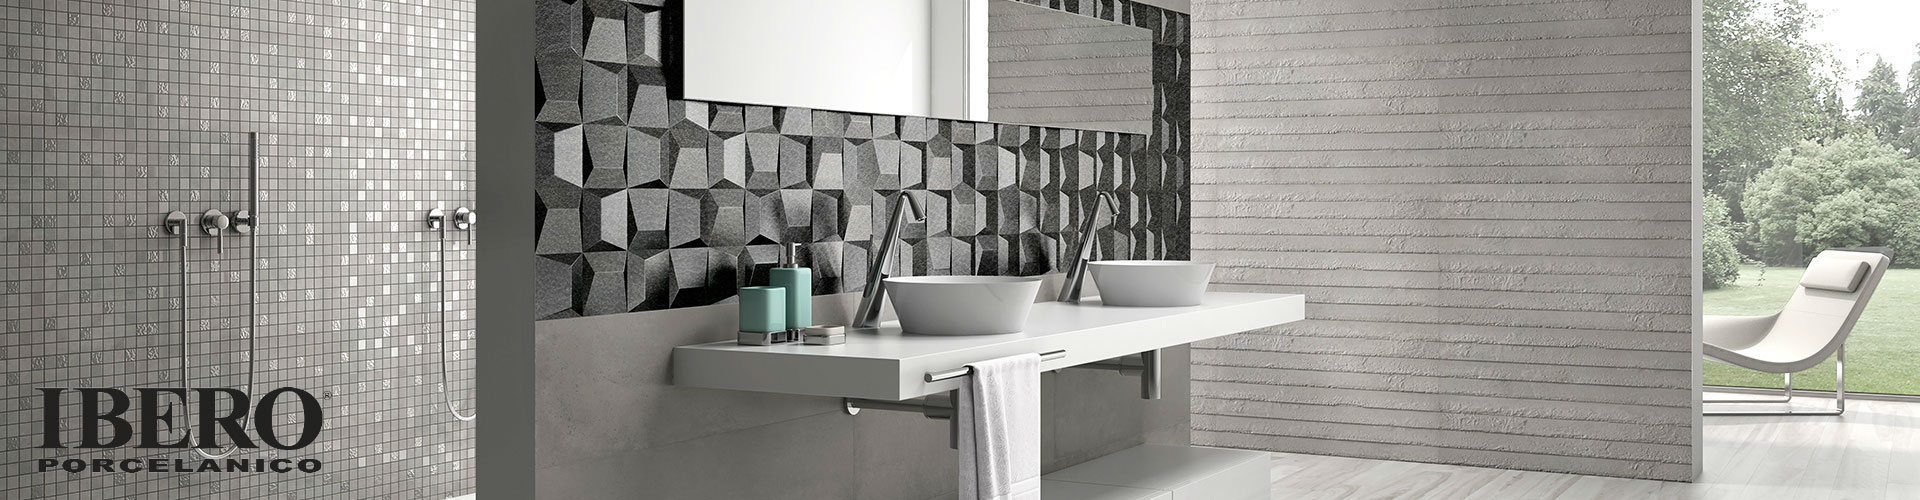 Kimi Commerce - Ibero Porcelanico